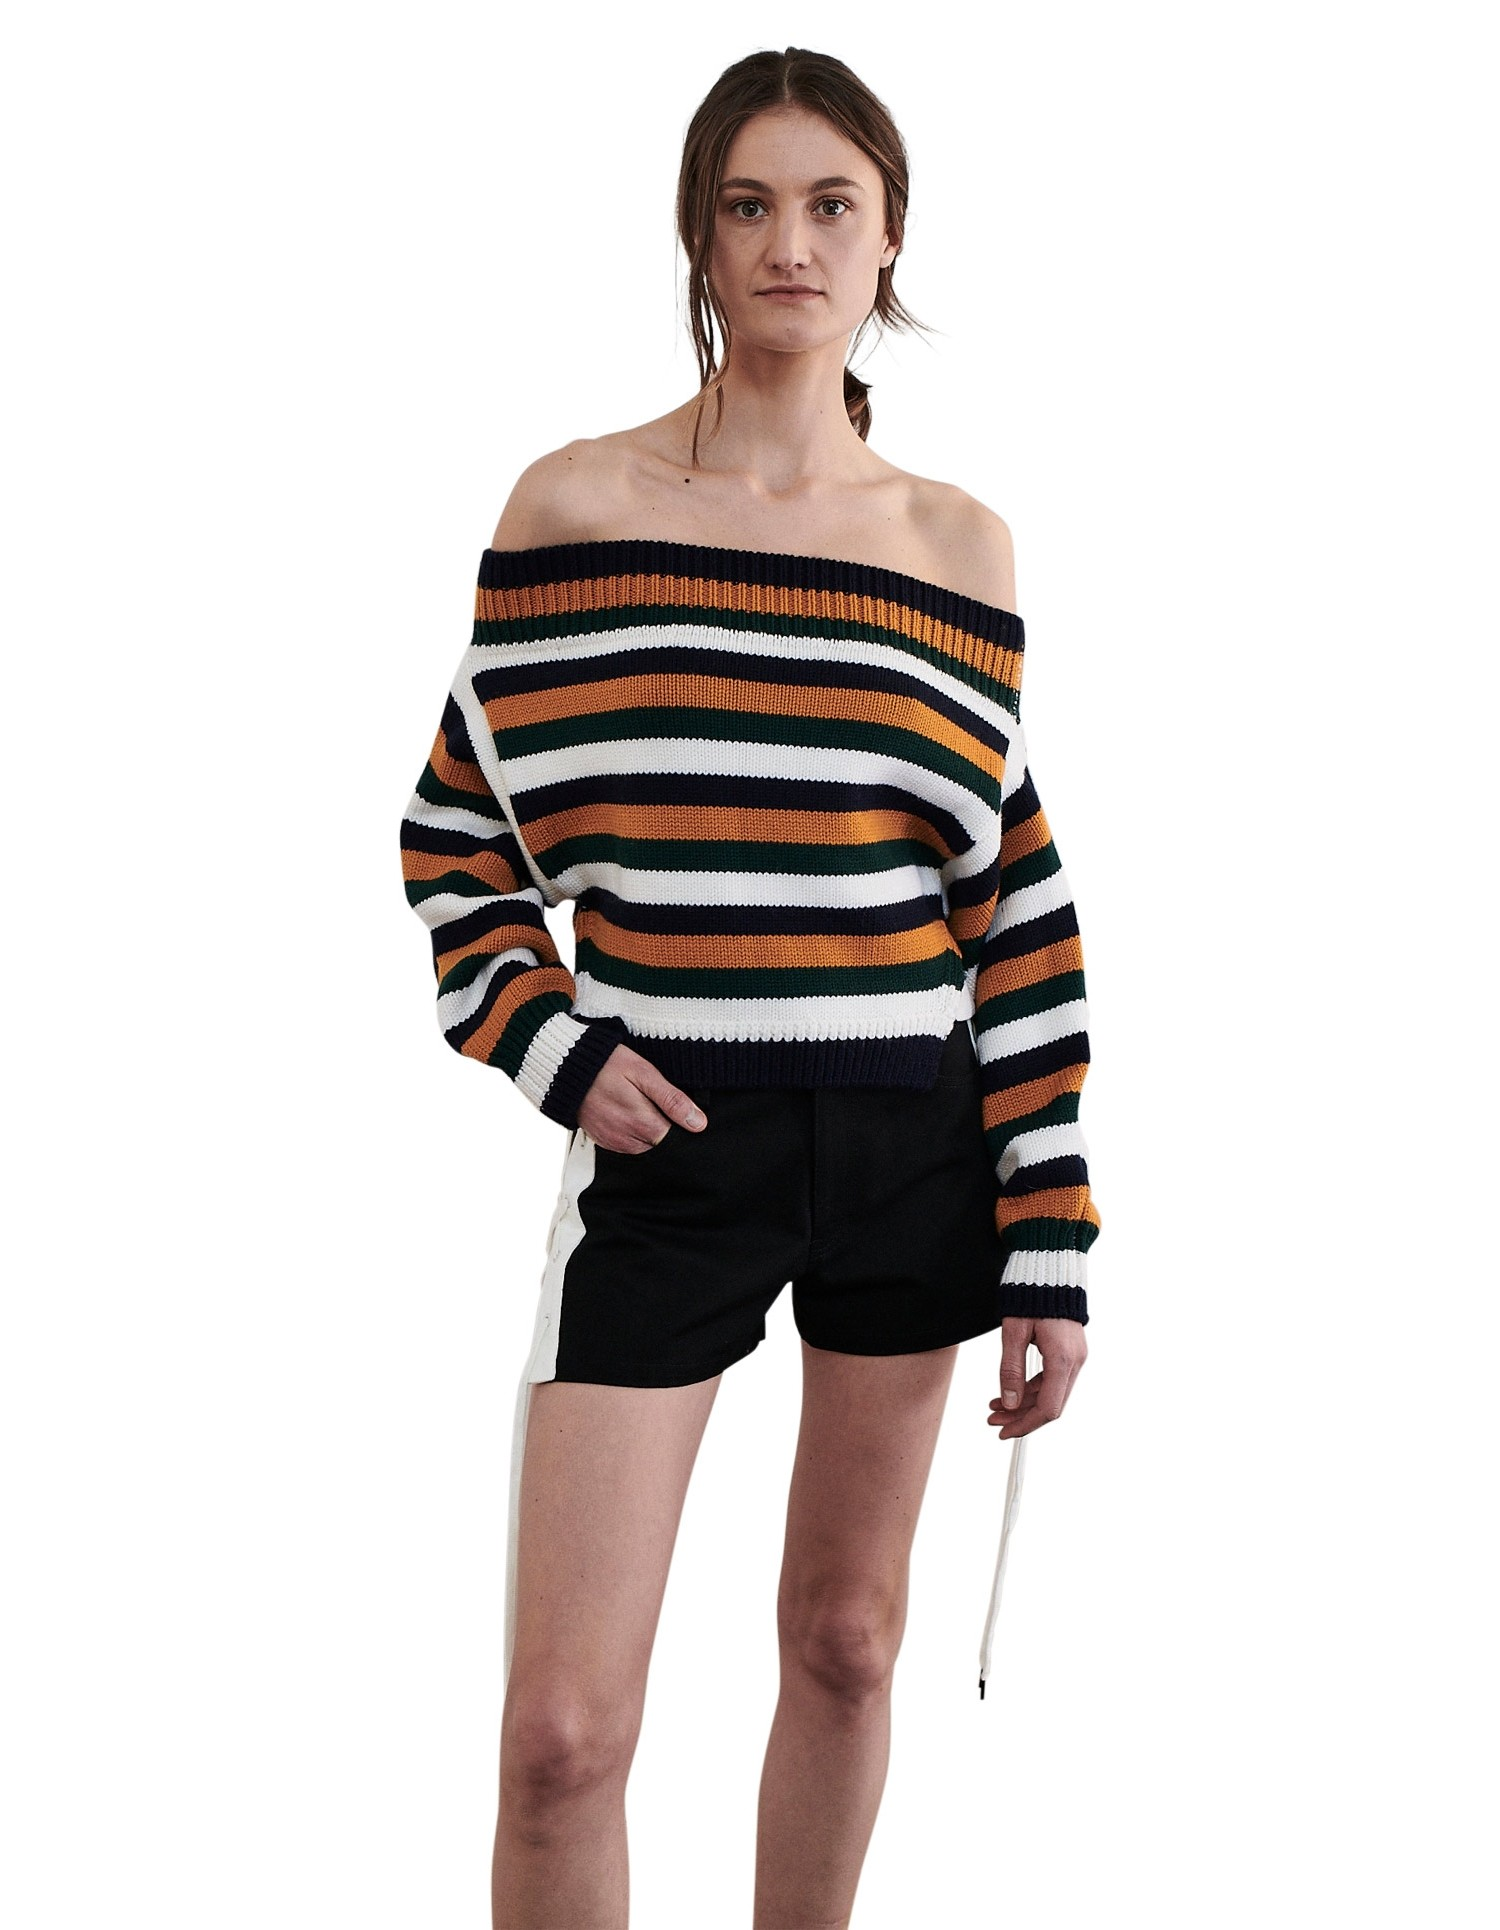 MONSE Cropped Off the Shoulder Sweater on Model Front View